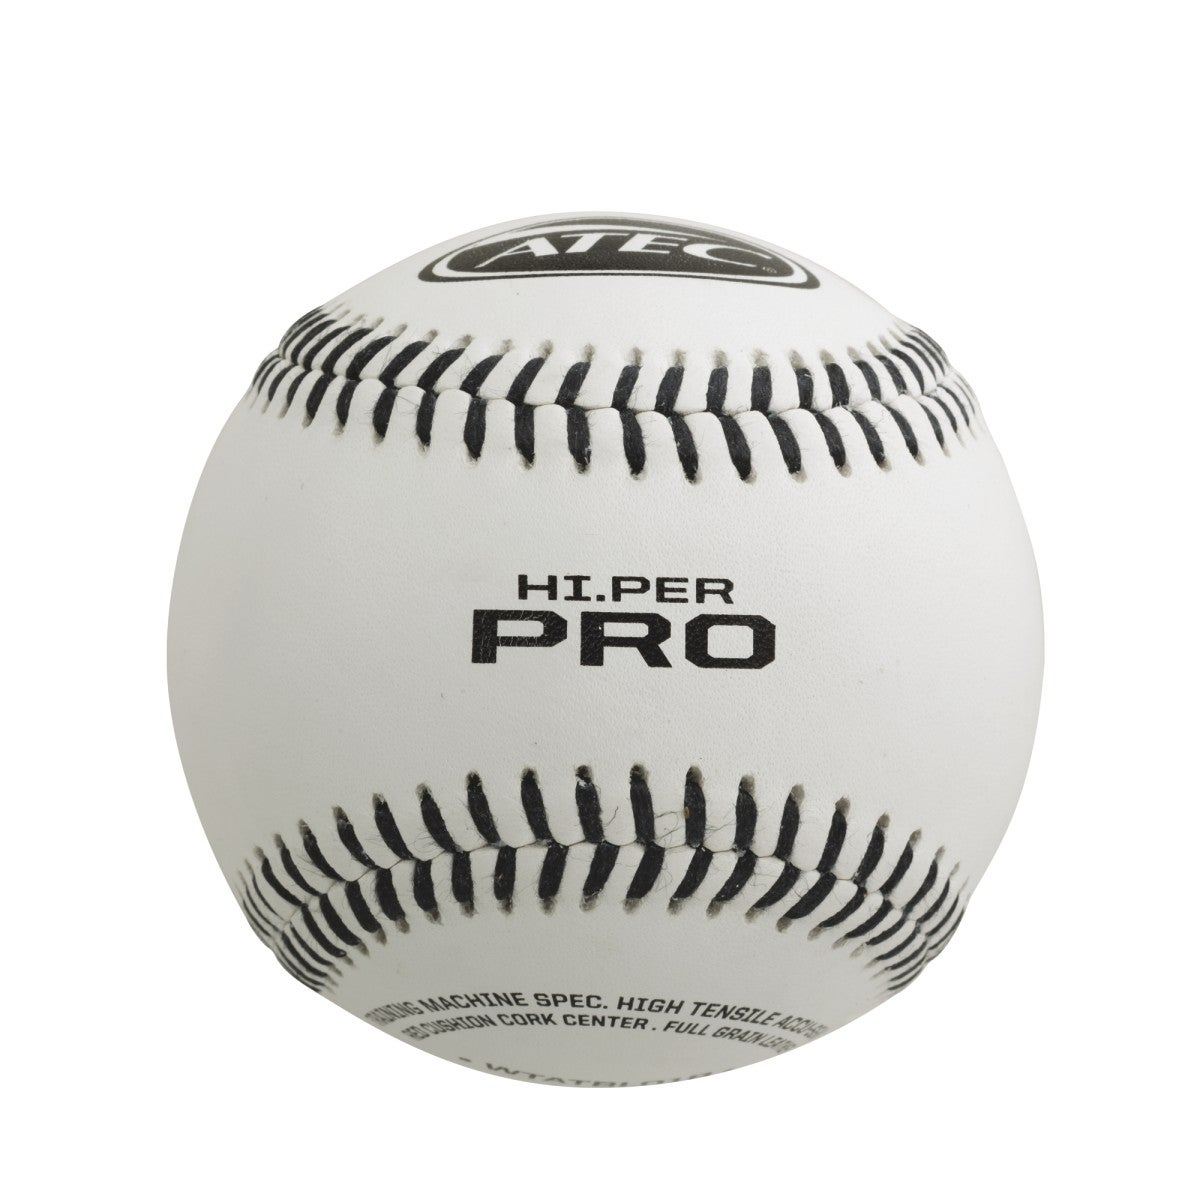 ATEC Hi.Per Pro - Leather Flat Seam Baseball